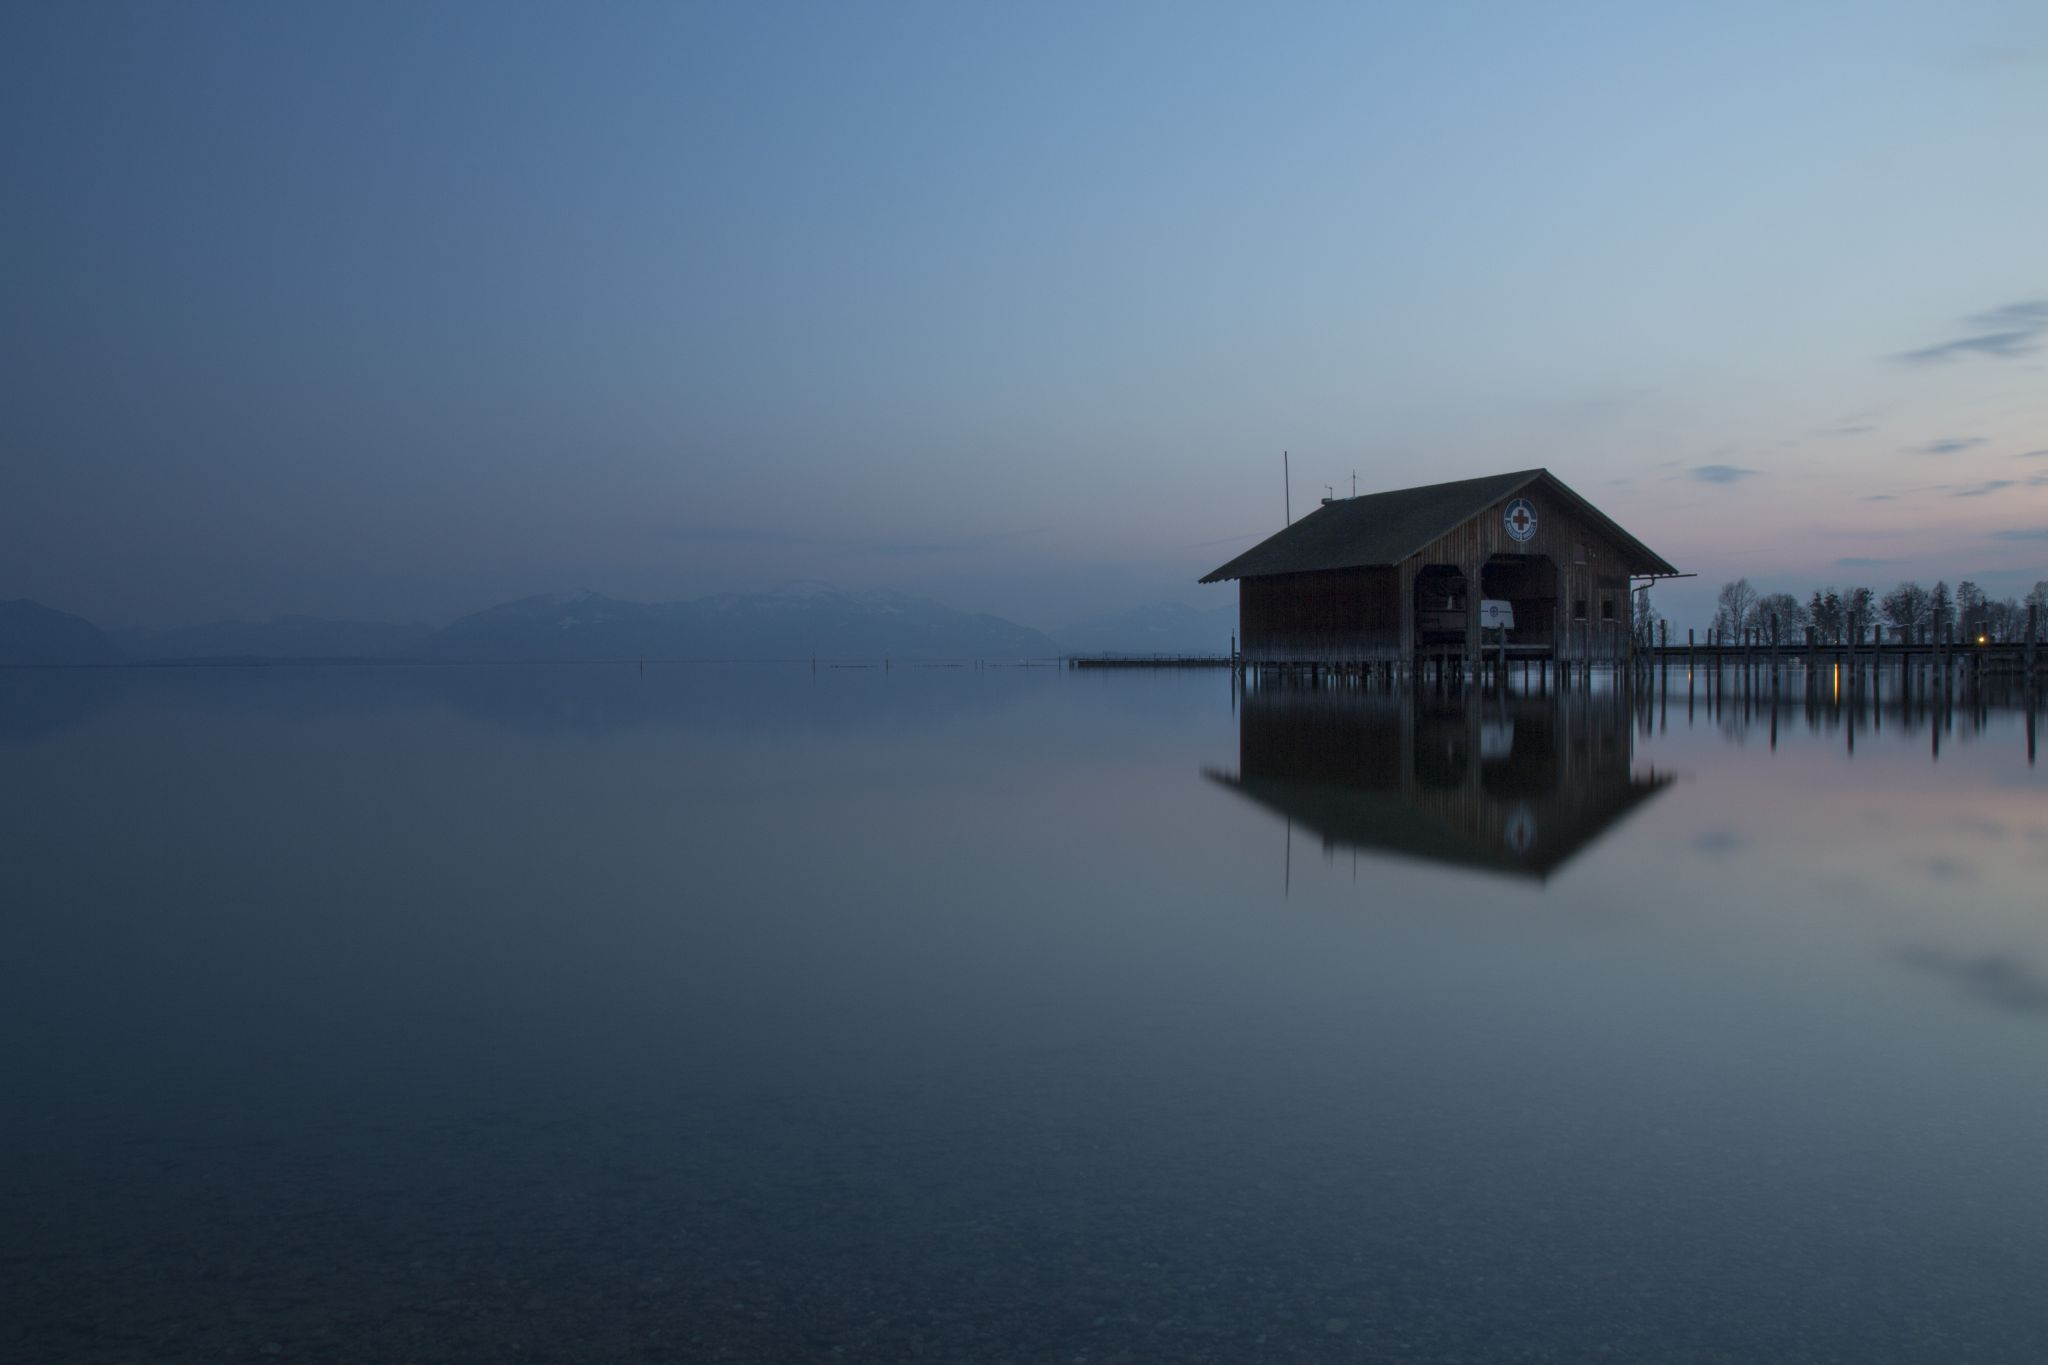 Chiemsee - boathouse at blue hour, Germany